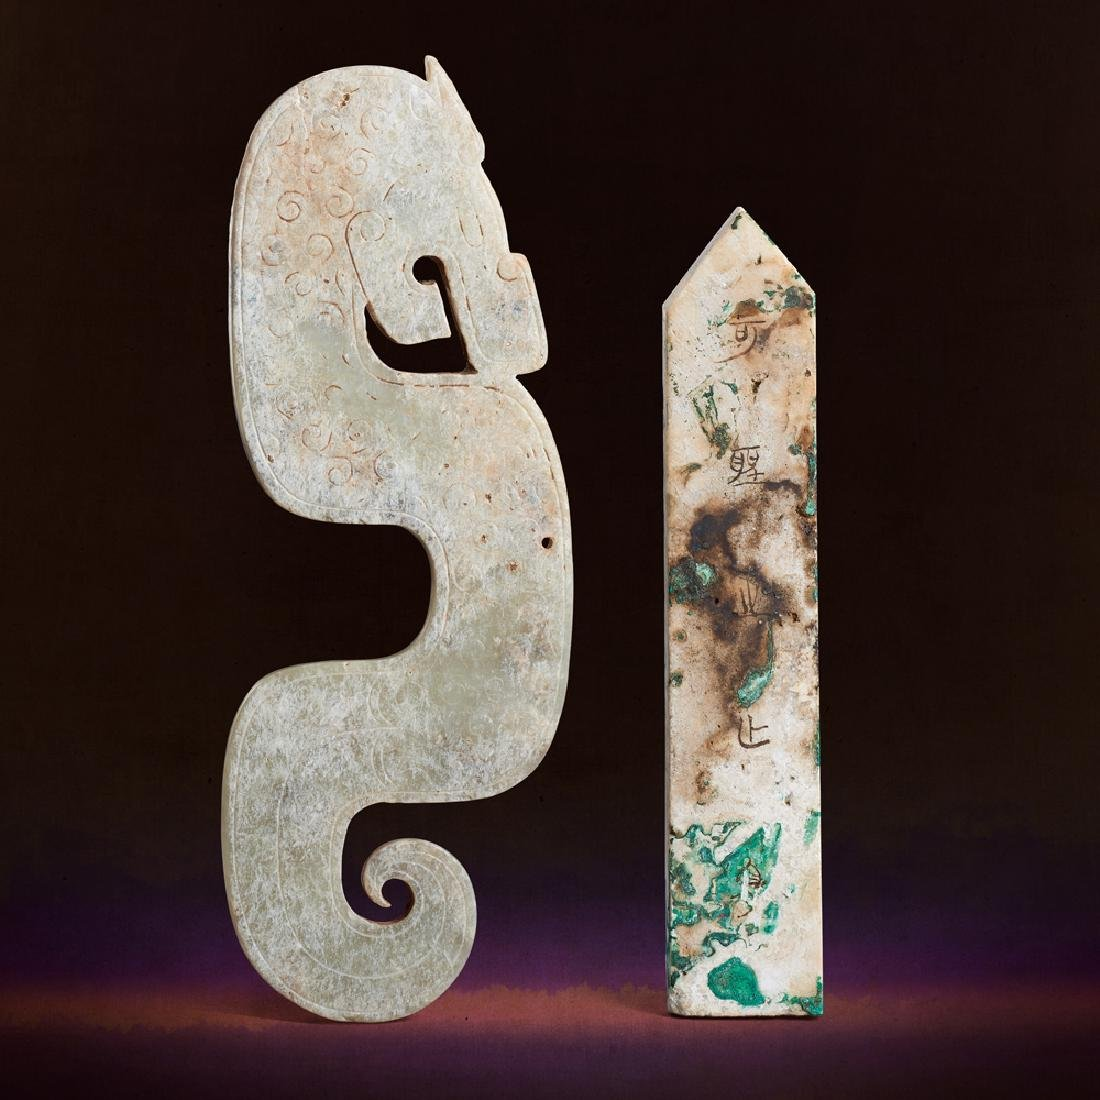 A CHINESE JADE CEREMONIAL TABLET AND A CHINESE JADE